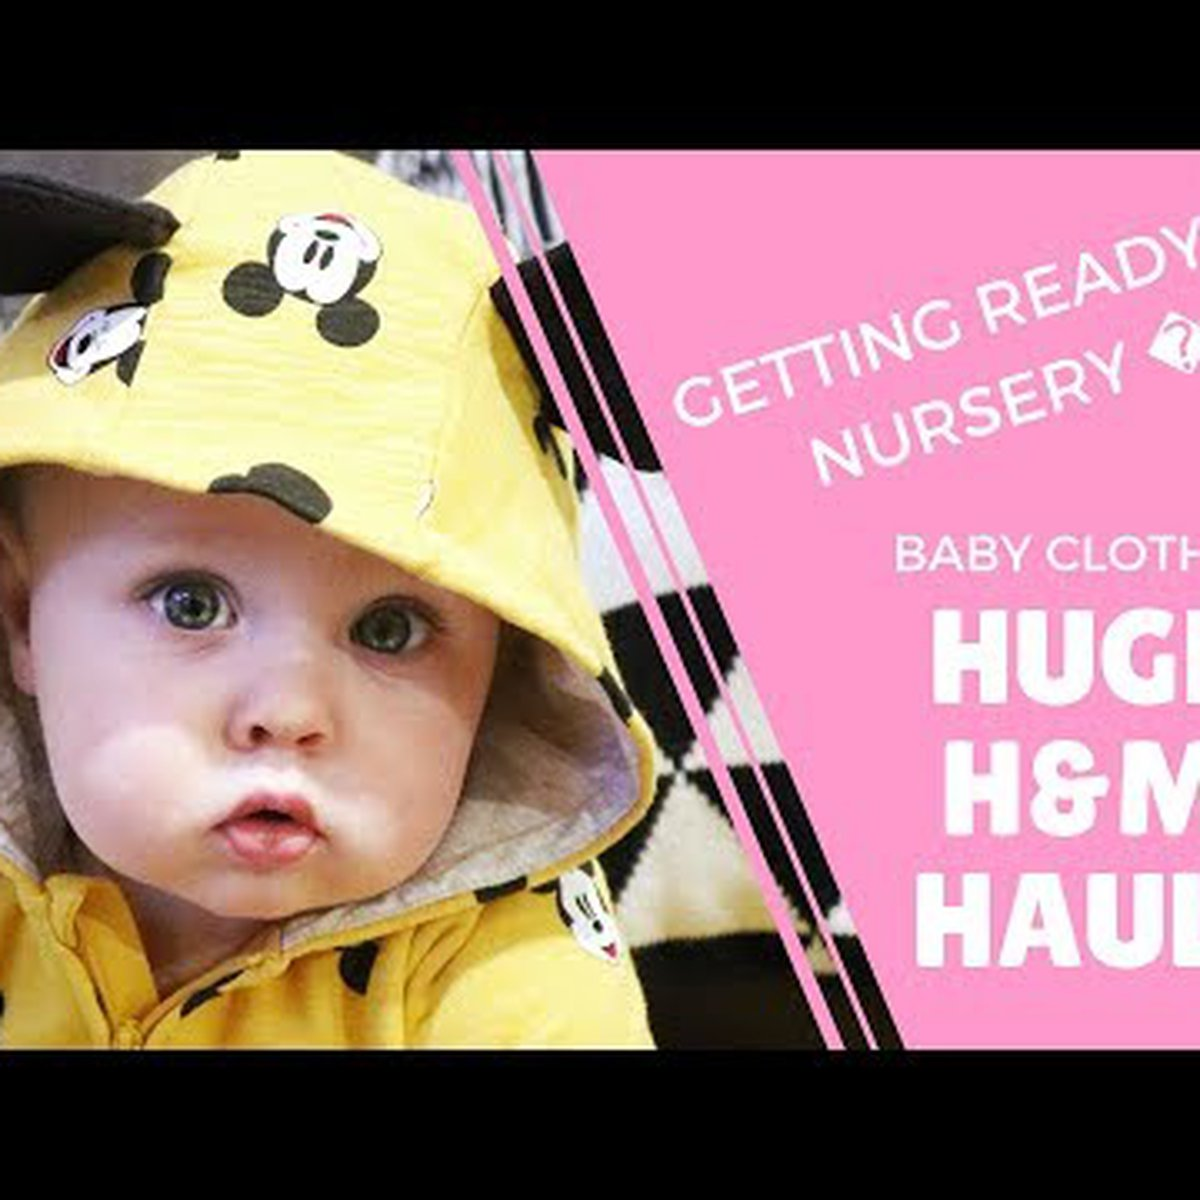 6efa25dbc Huge h&m baby clothes haul | getting ready for nursery | baby boy clothes |  oh hi diy!